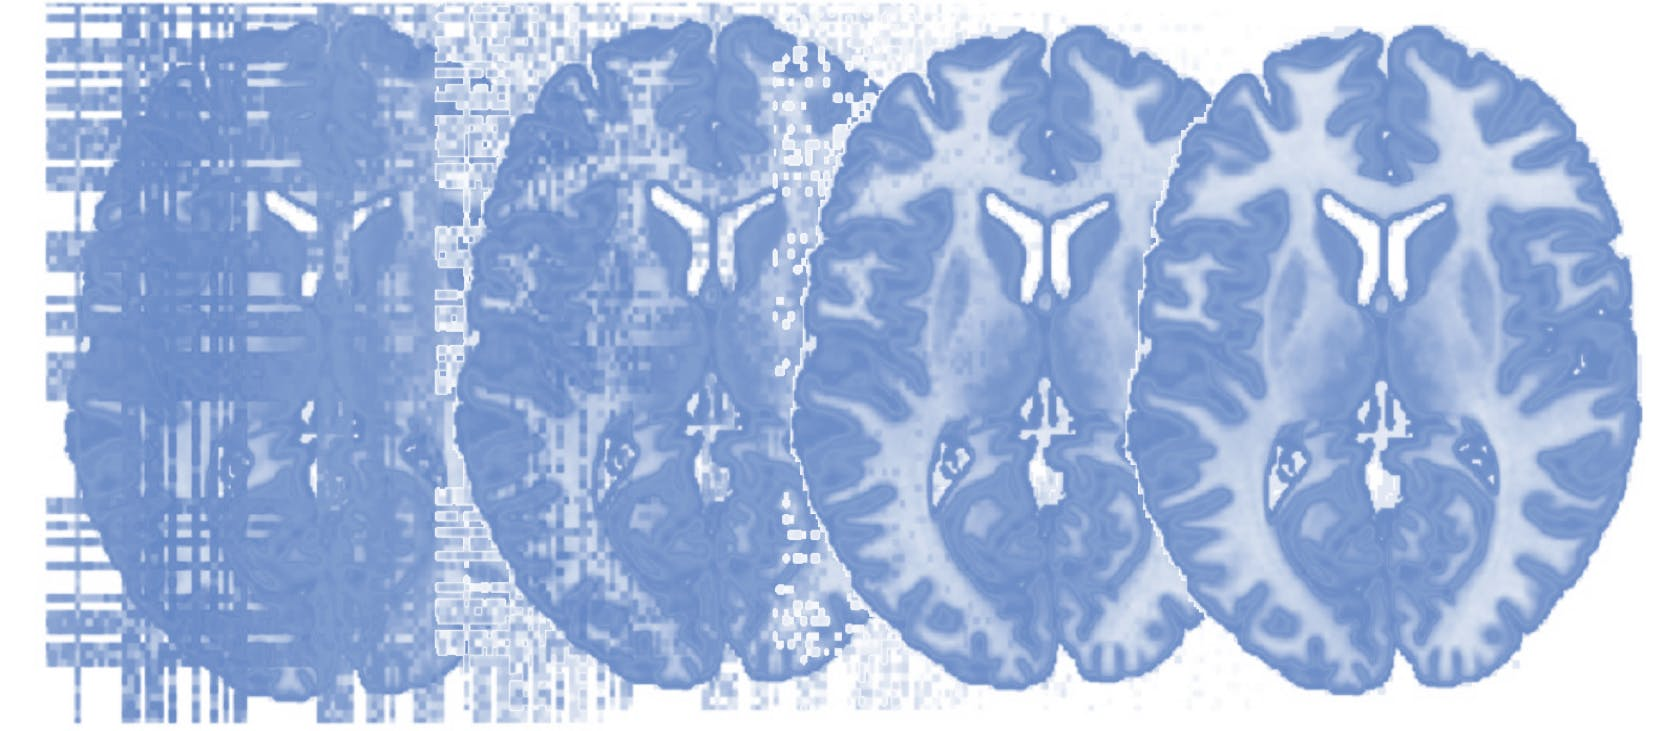 Principles of fMRI 1